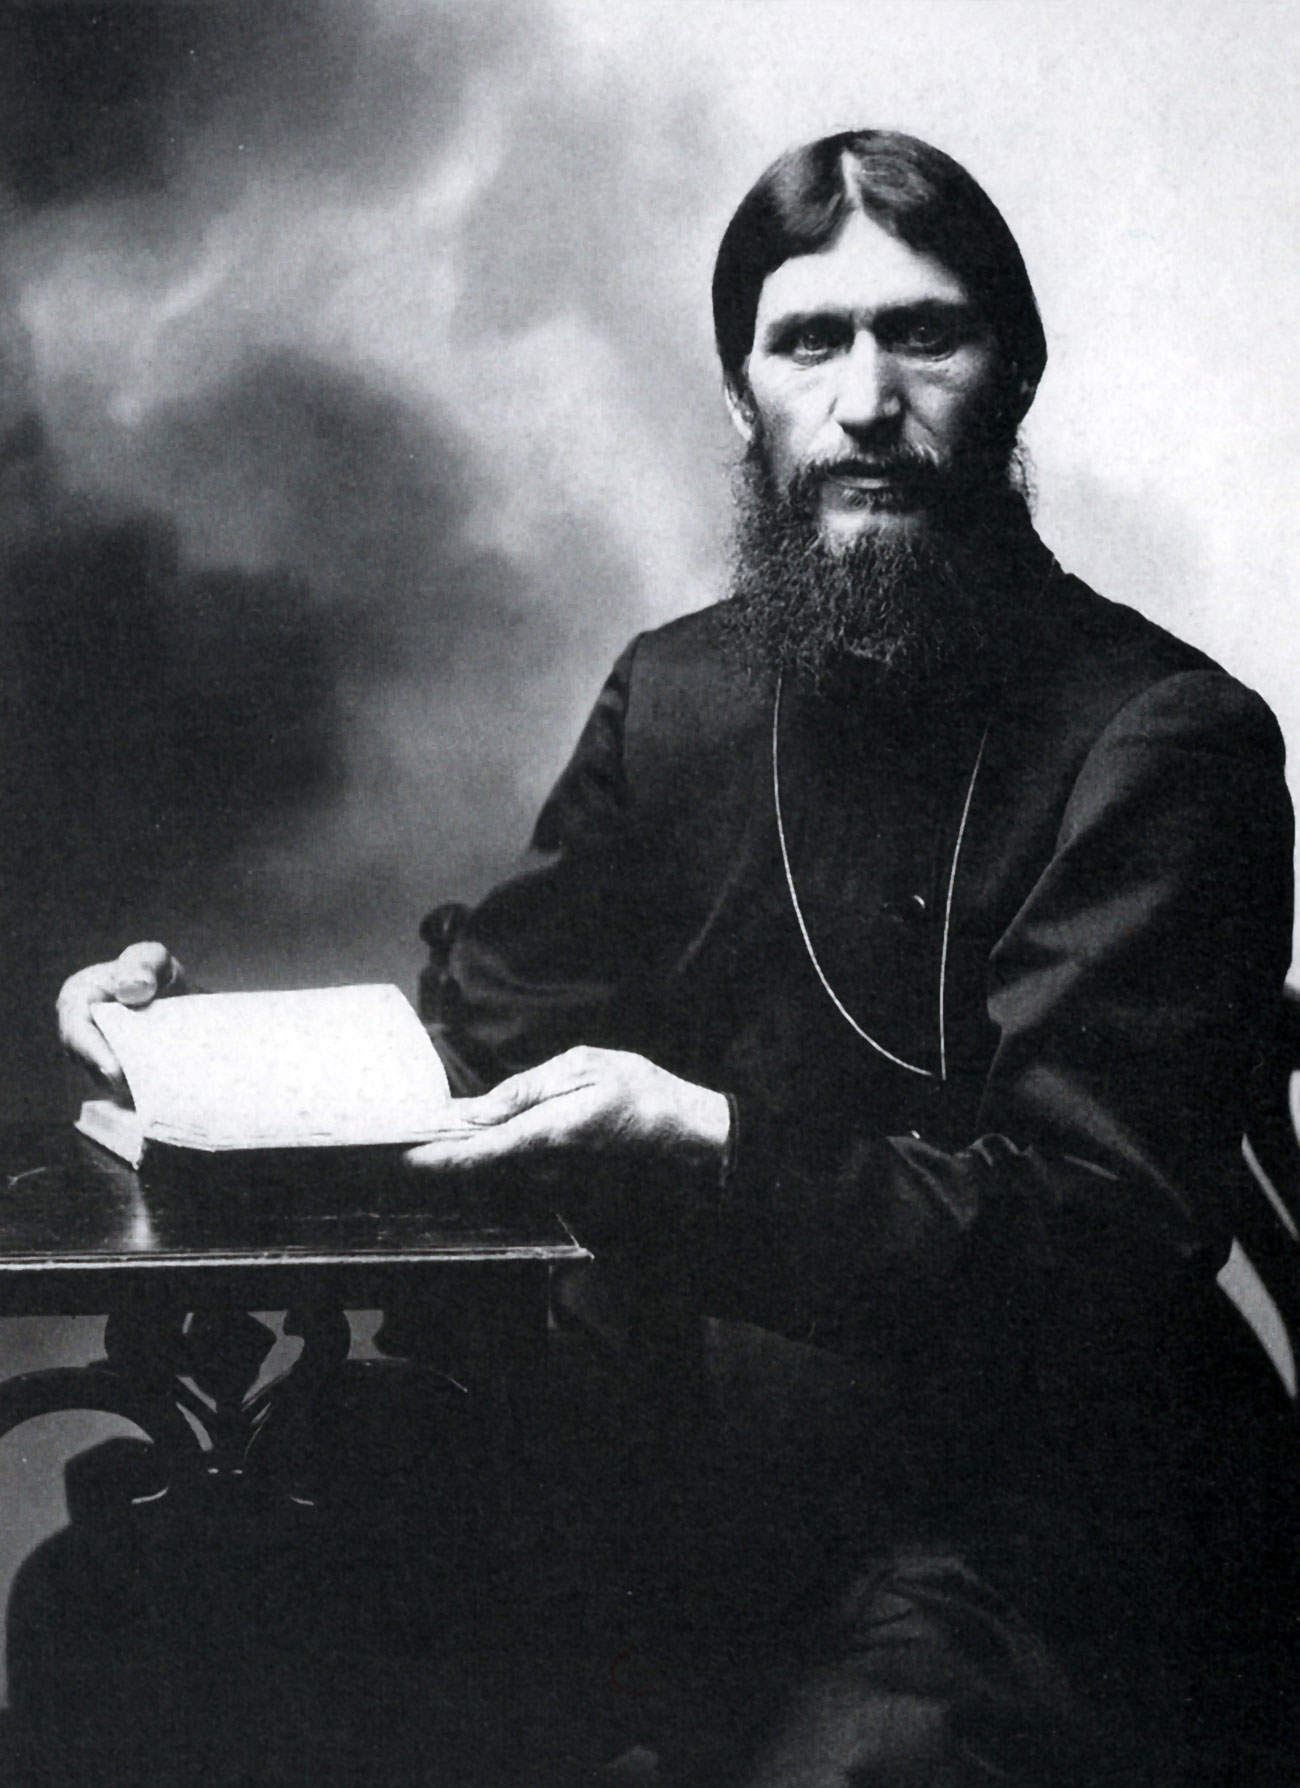 Grigori Yefimovich Rasputin (1869 – 30 December 1916) Russian peasant, mystical faith healer and private adviser to the Romanovs.